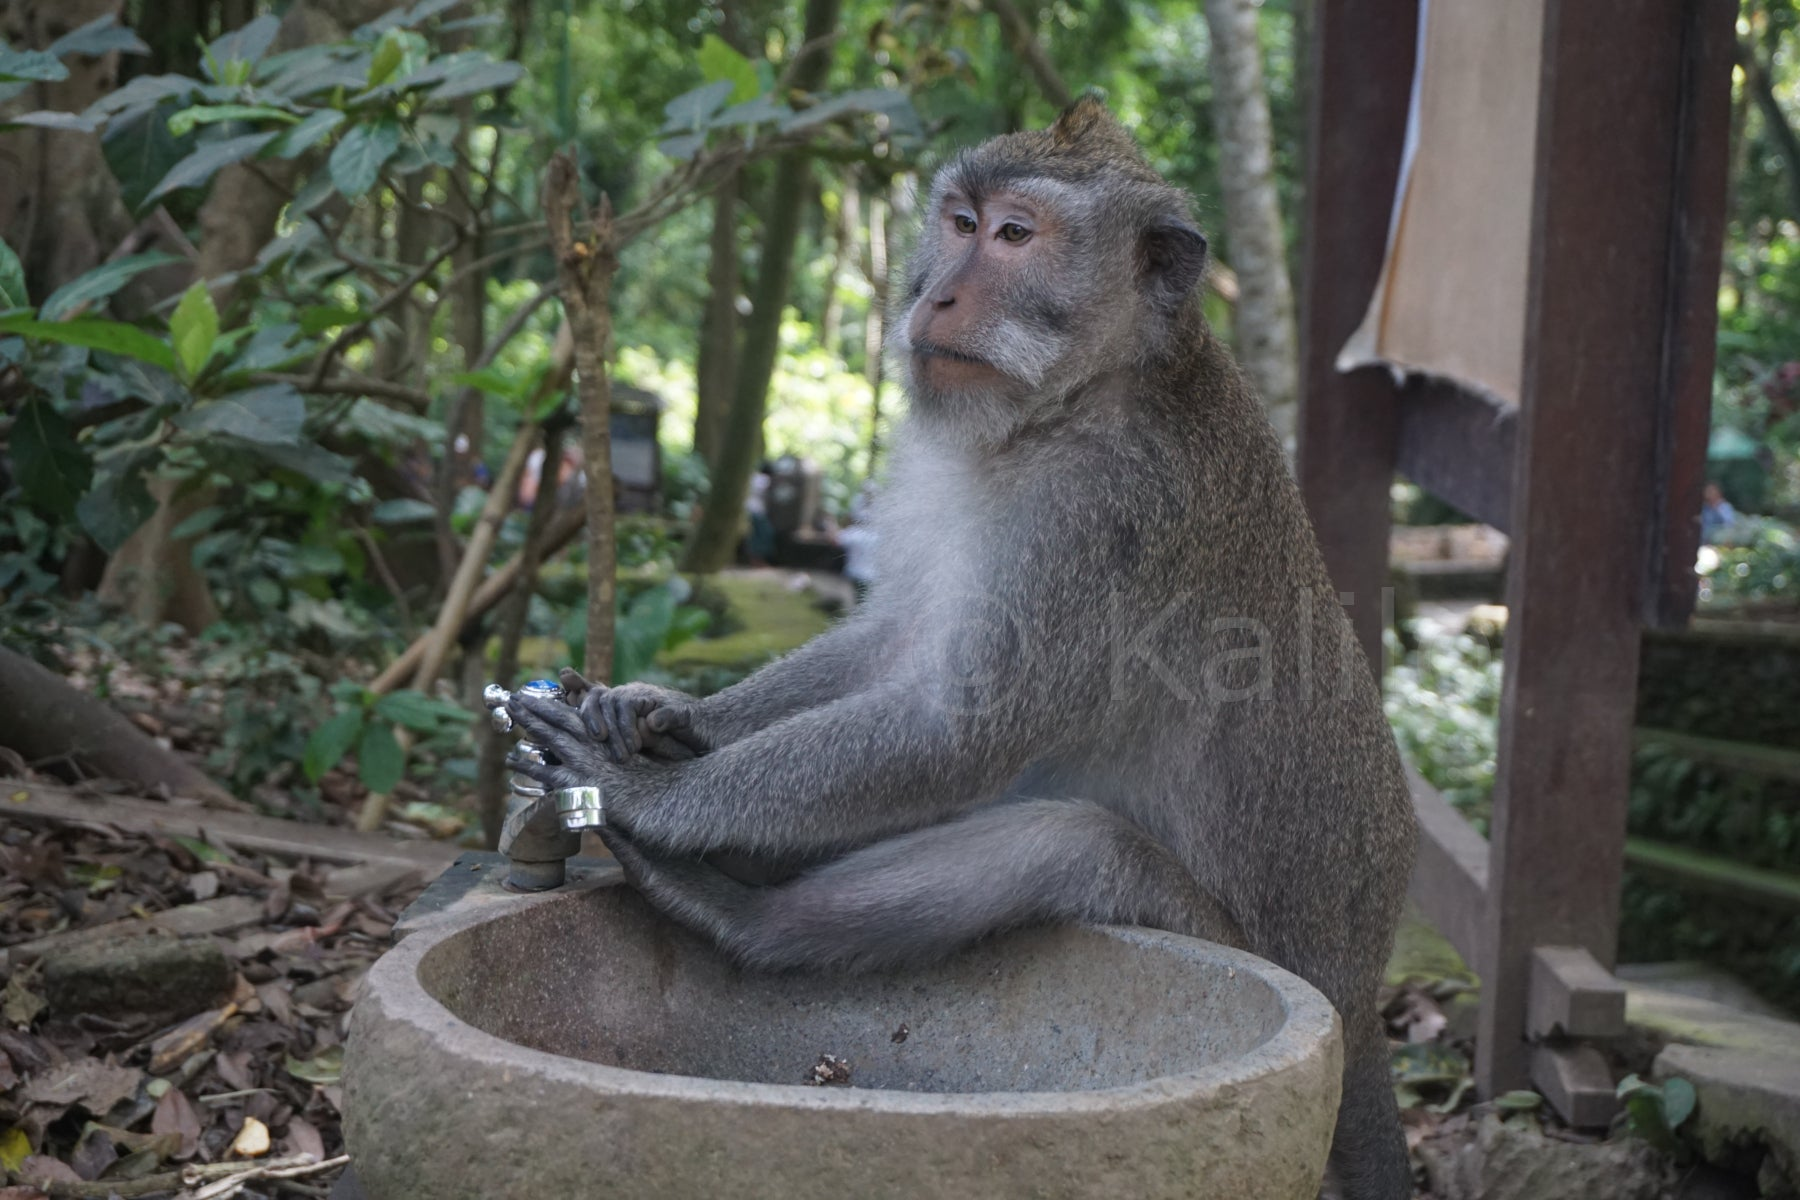 A monkey in the monkey forest - Ubud, Bali, Indonesia